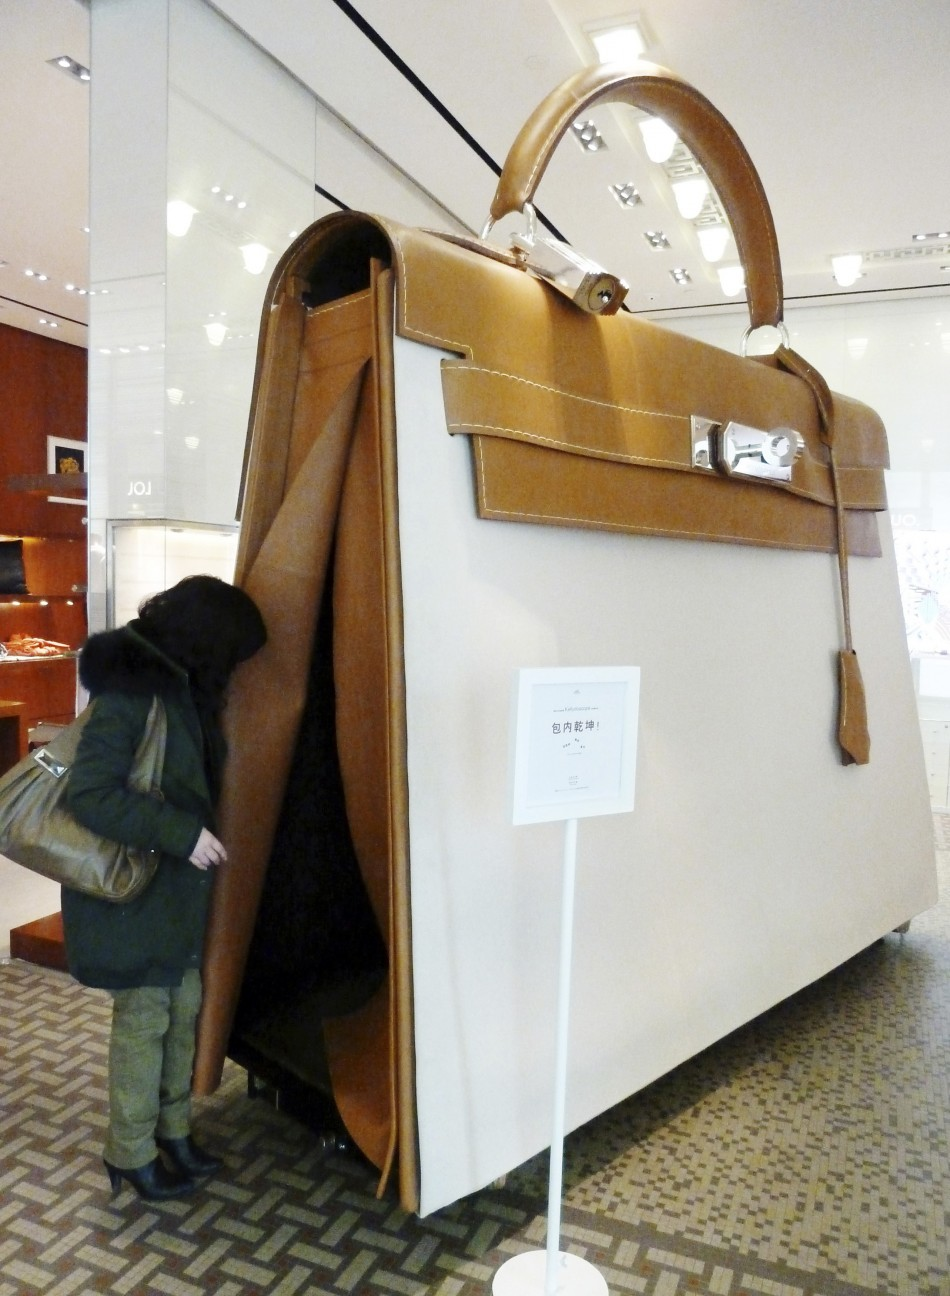 A customer looks into a giant Hermes Kelly handbag at a Hermes boutique in Nanjing